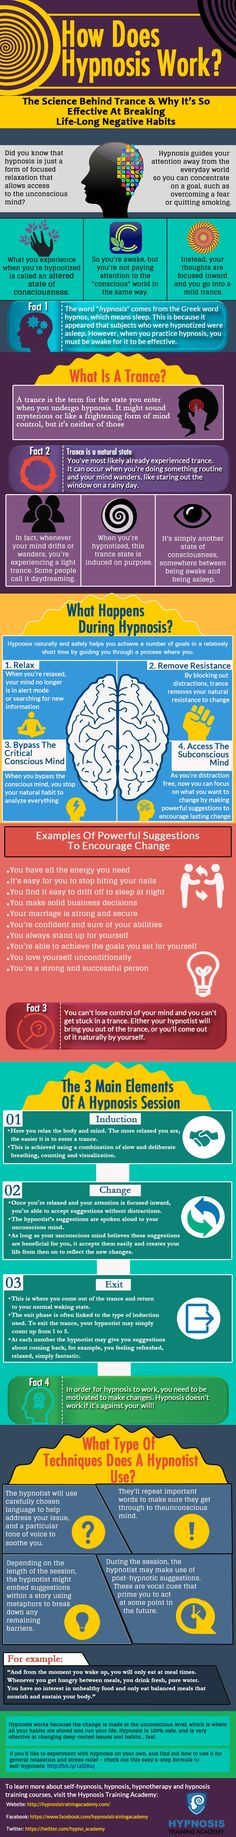 How Does Hypnosis Work? INFOGRAPHIC